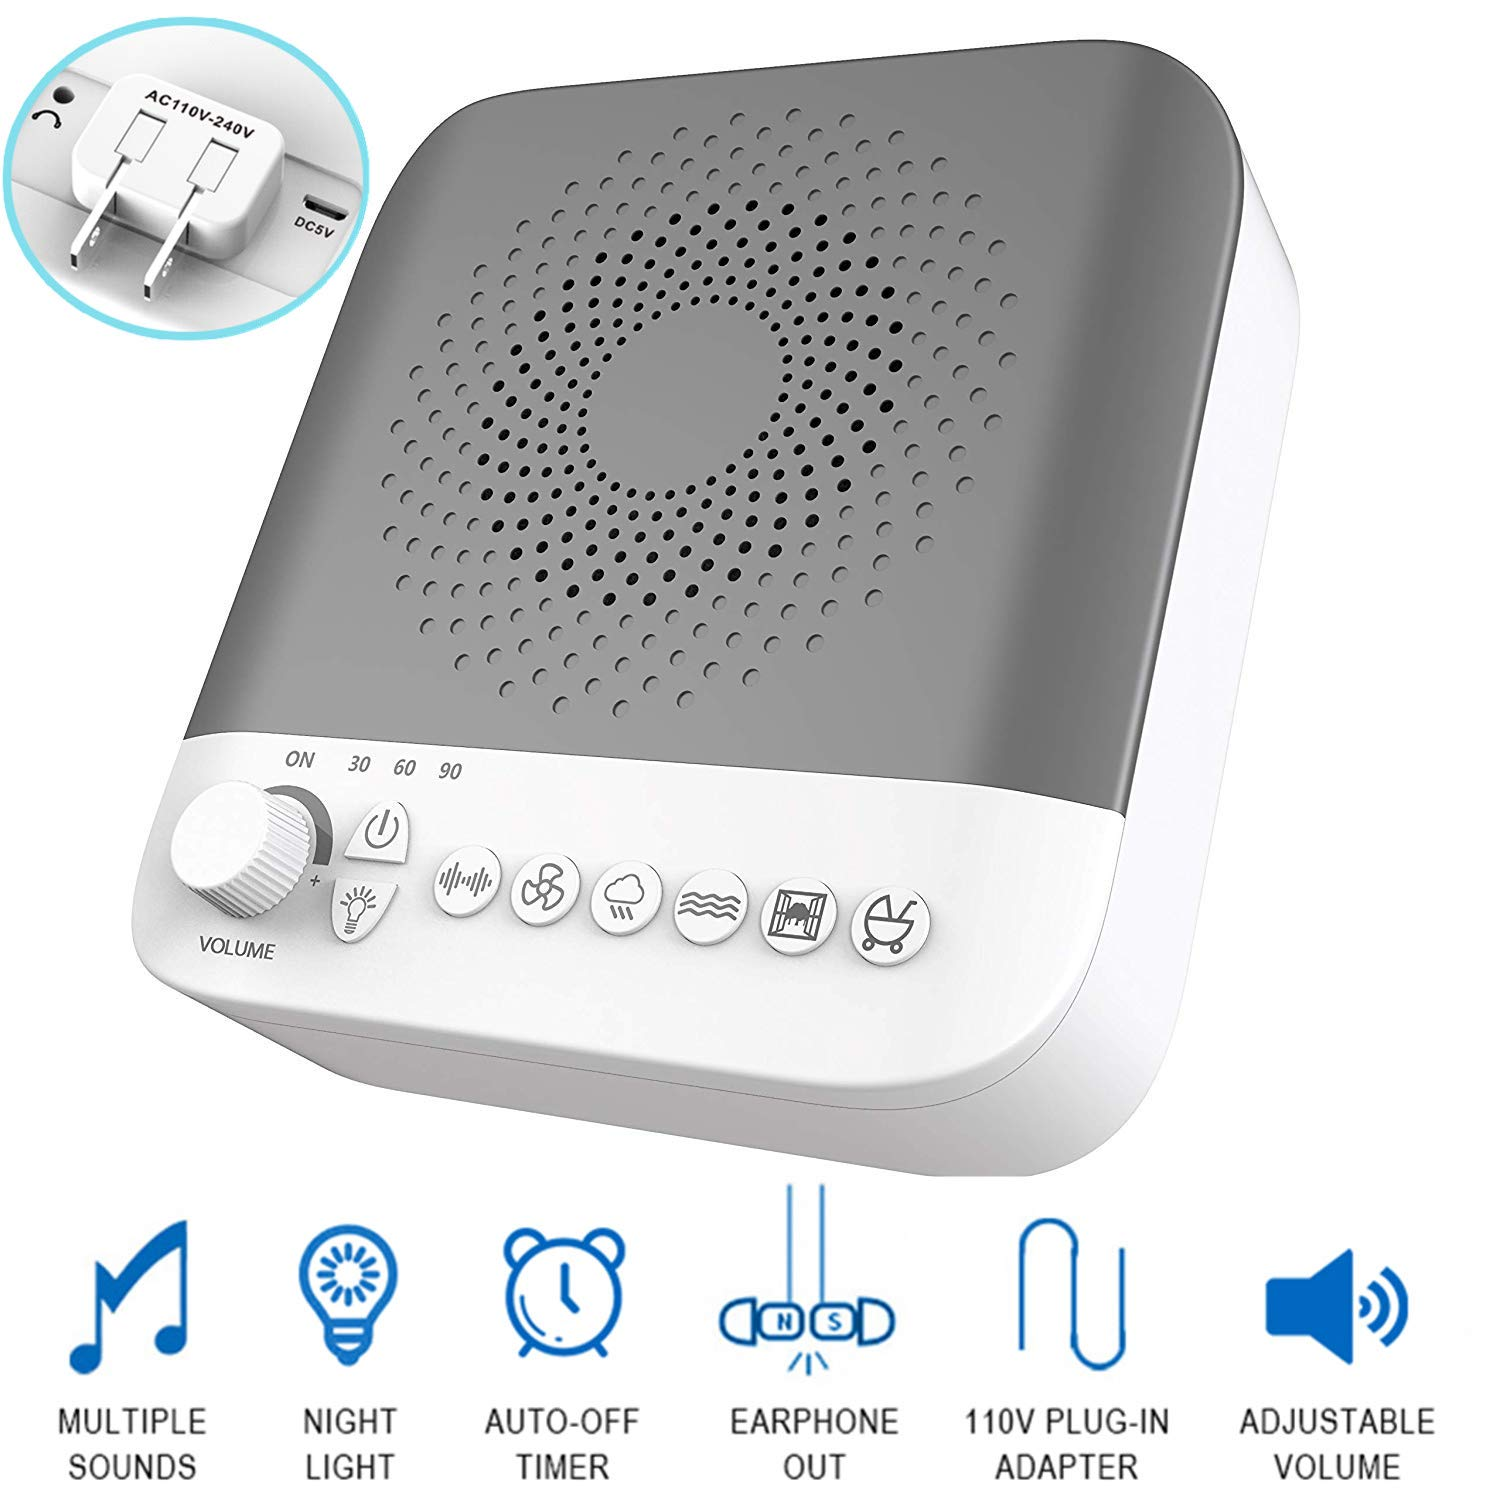 A3-02 Plug-in Night Light White Noise Sound Machine with 17 Non-Looping Soothing Natural Sounds, Relax Timer Setting/Portable Sleep Therapy Machine for Adults, Baby, Kids & Toddlers/Home & Travel